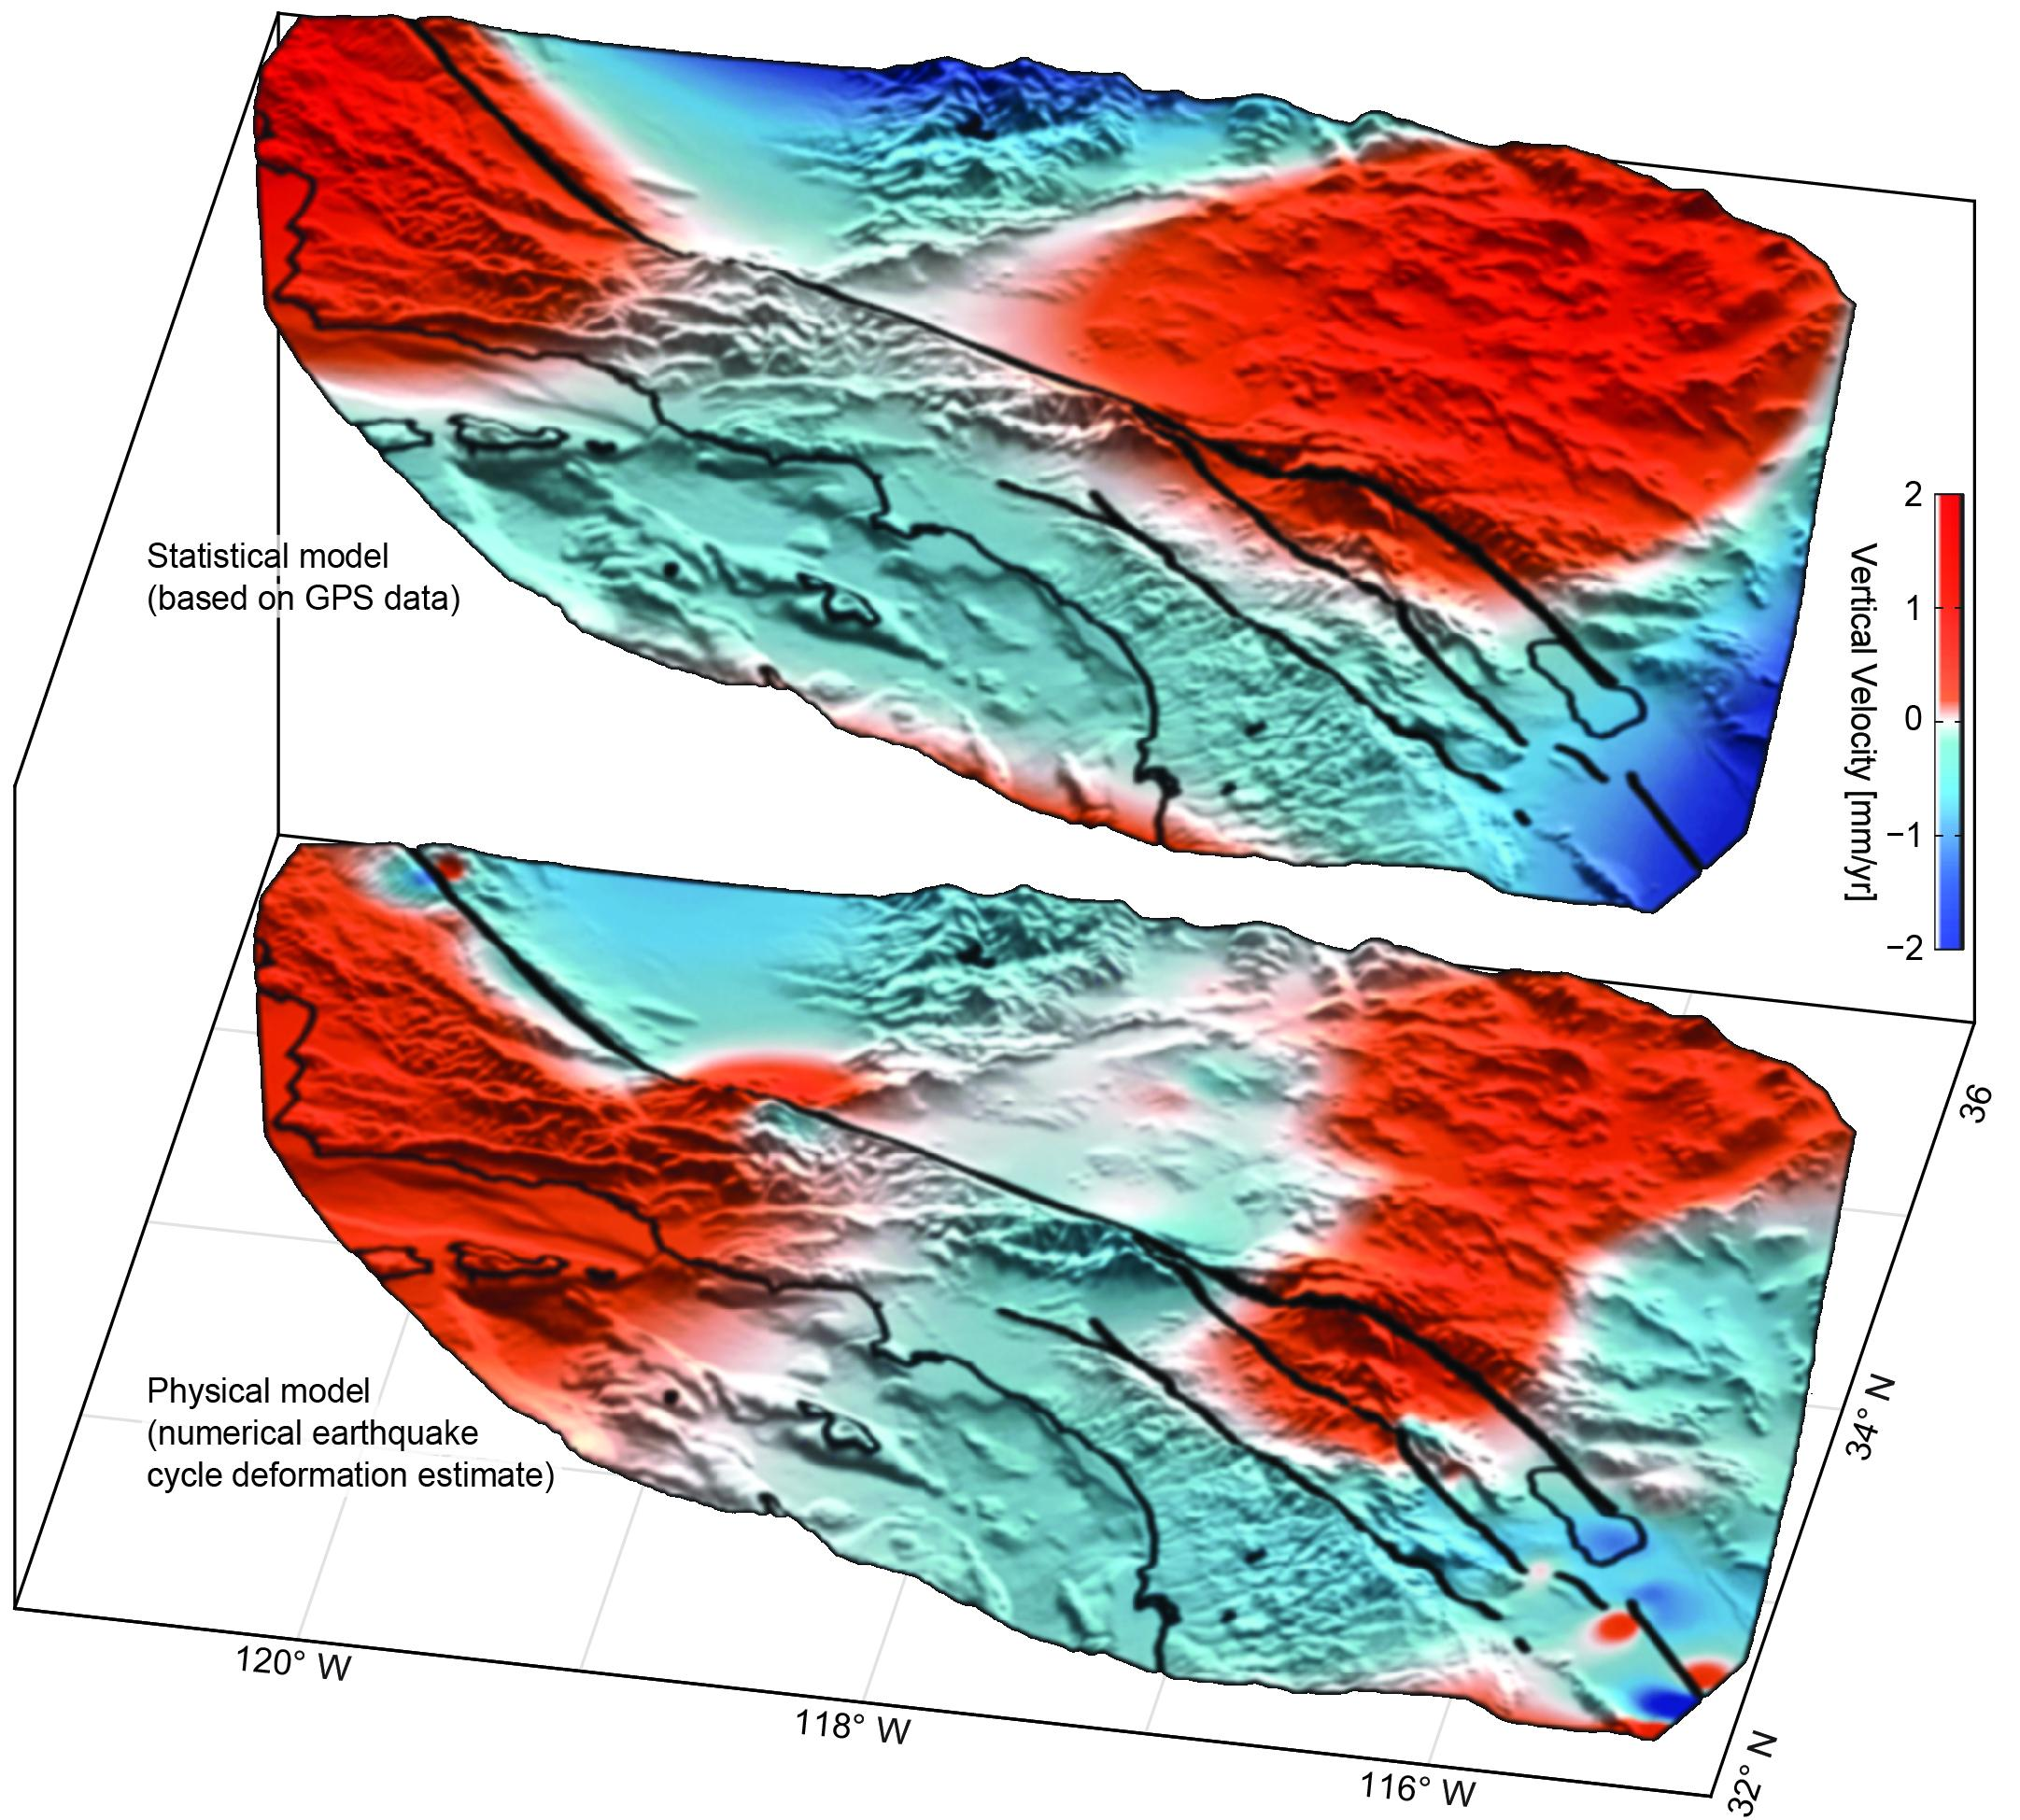 Uplift (red) and subsidence (blue) around the San Andreas Fault System ...